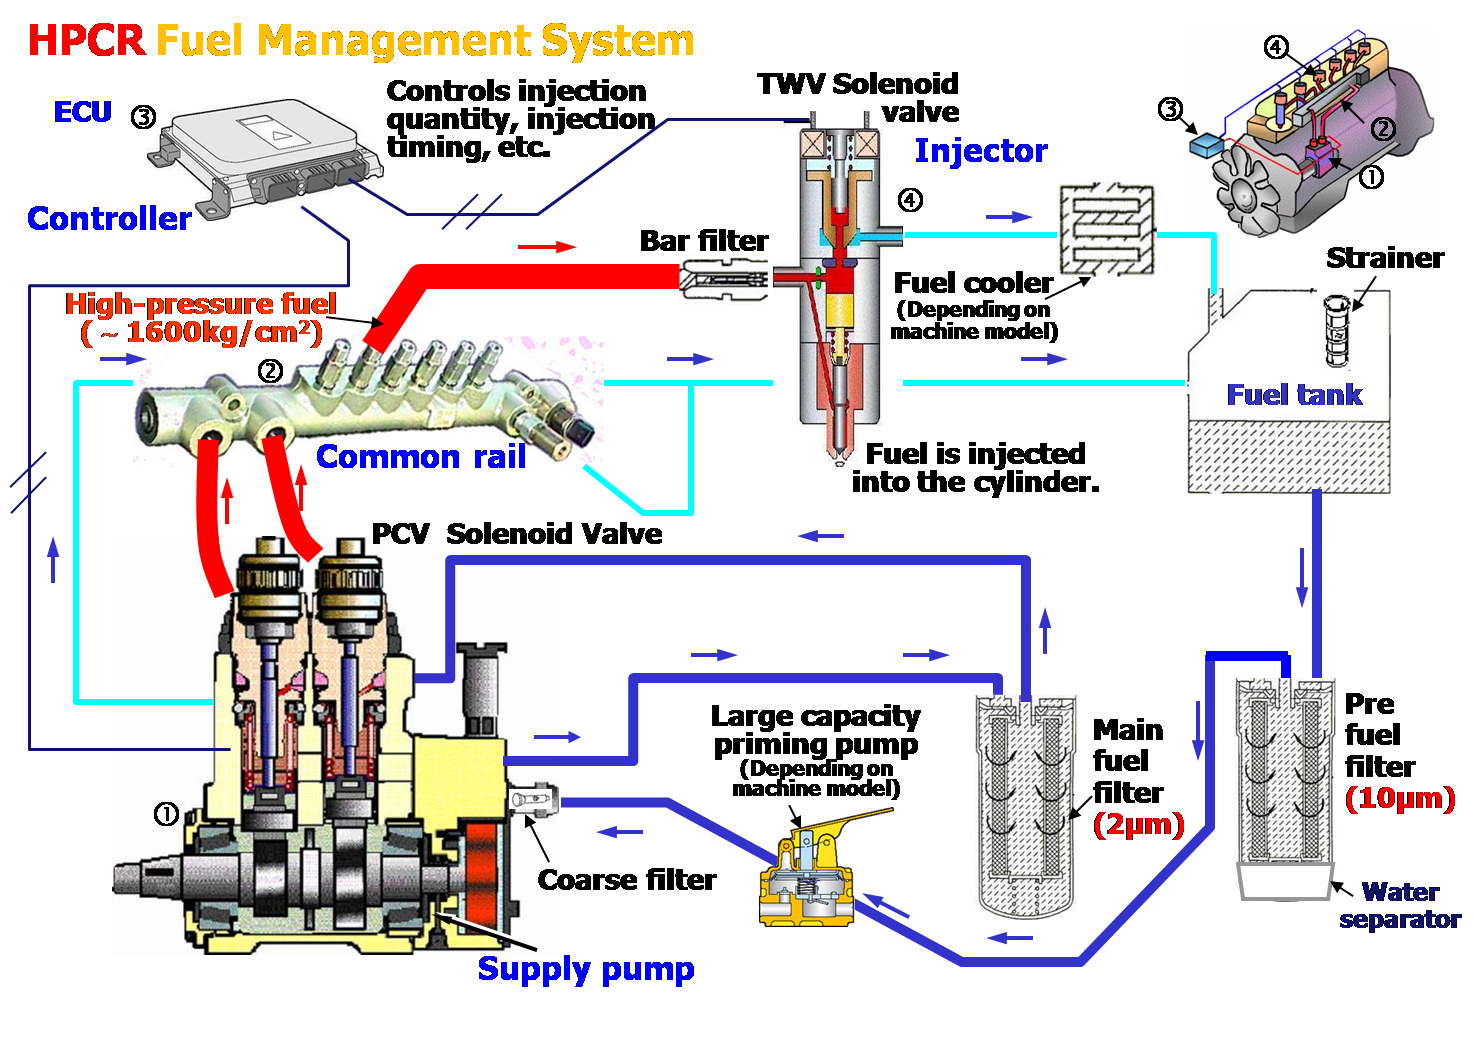 3116 cat engine parts diagram best part of wiring diagram3126 cat engine parts diagram for model [ 1475 x 1053 Pixel ]